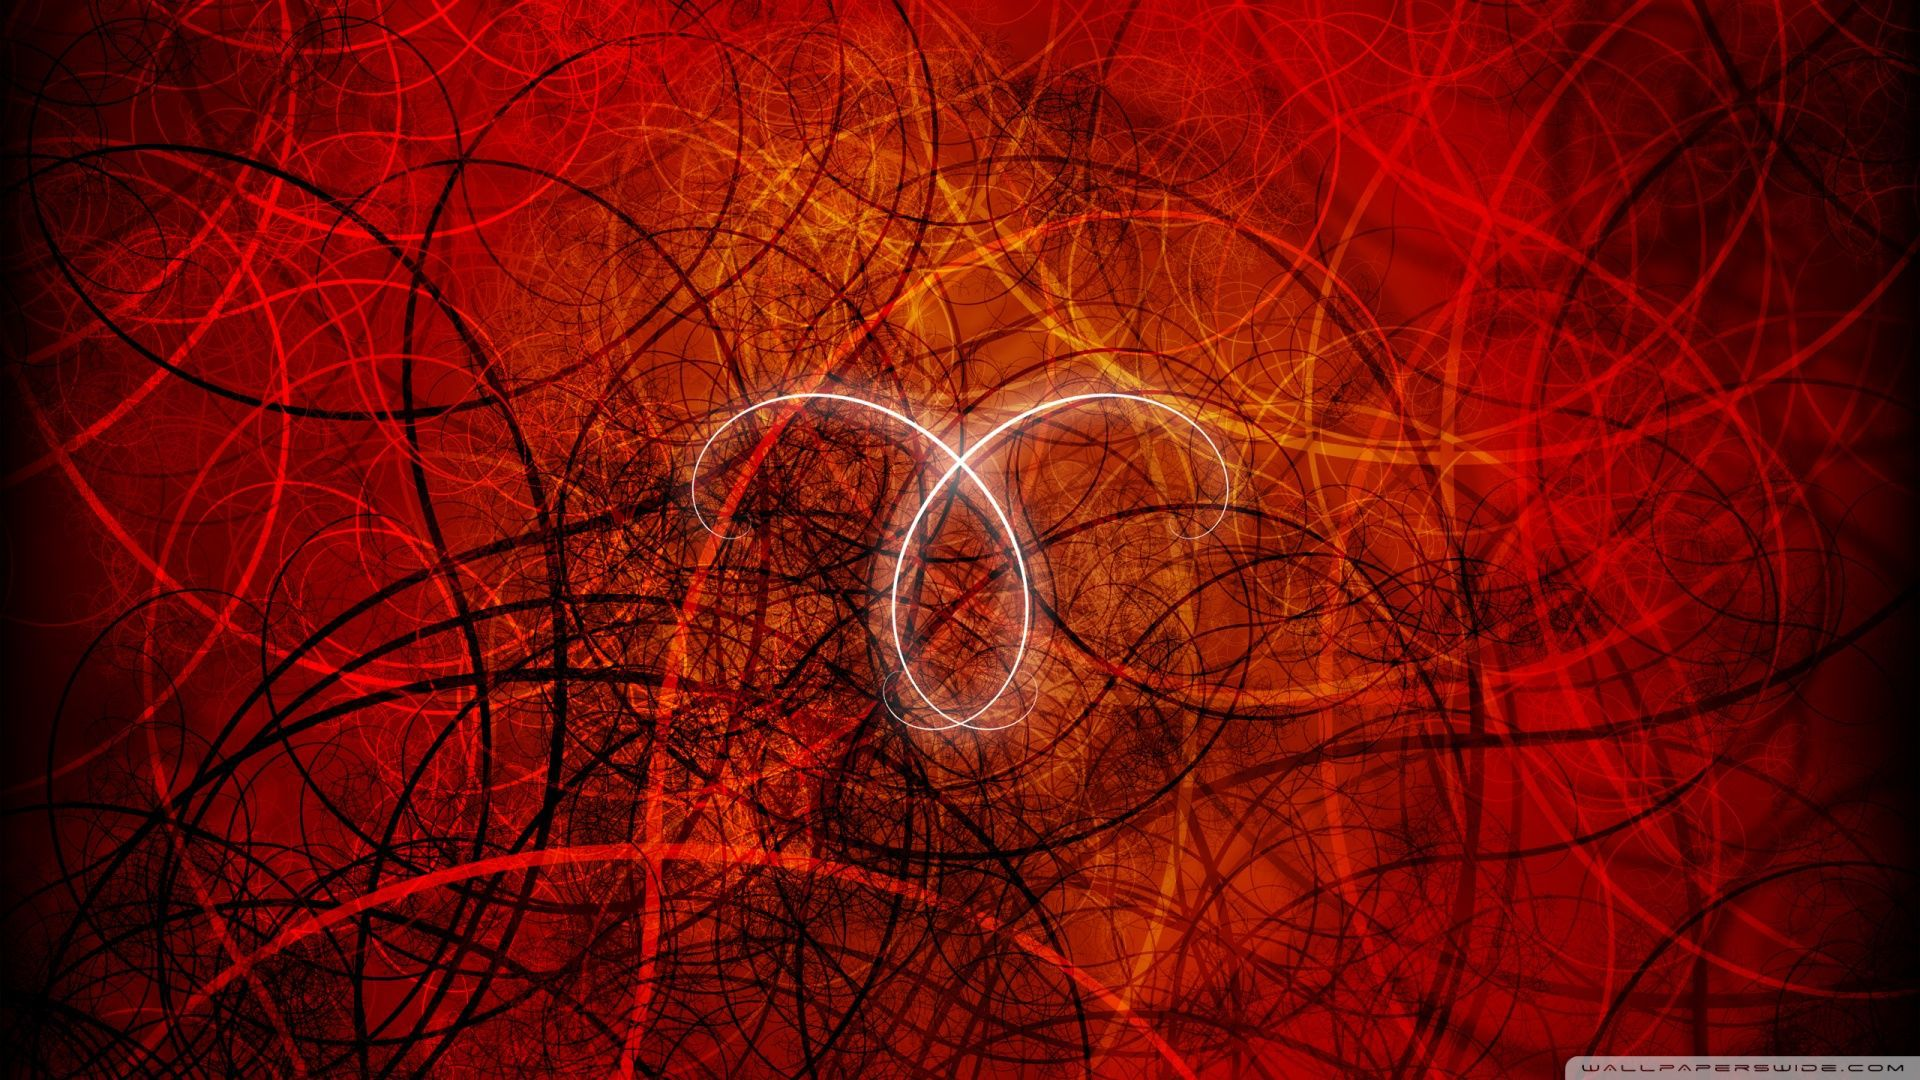 Aries sign in red wallpapers and images   wallpapers pictures photos 1920x1080